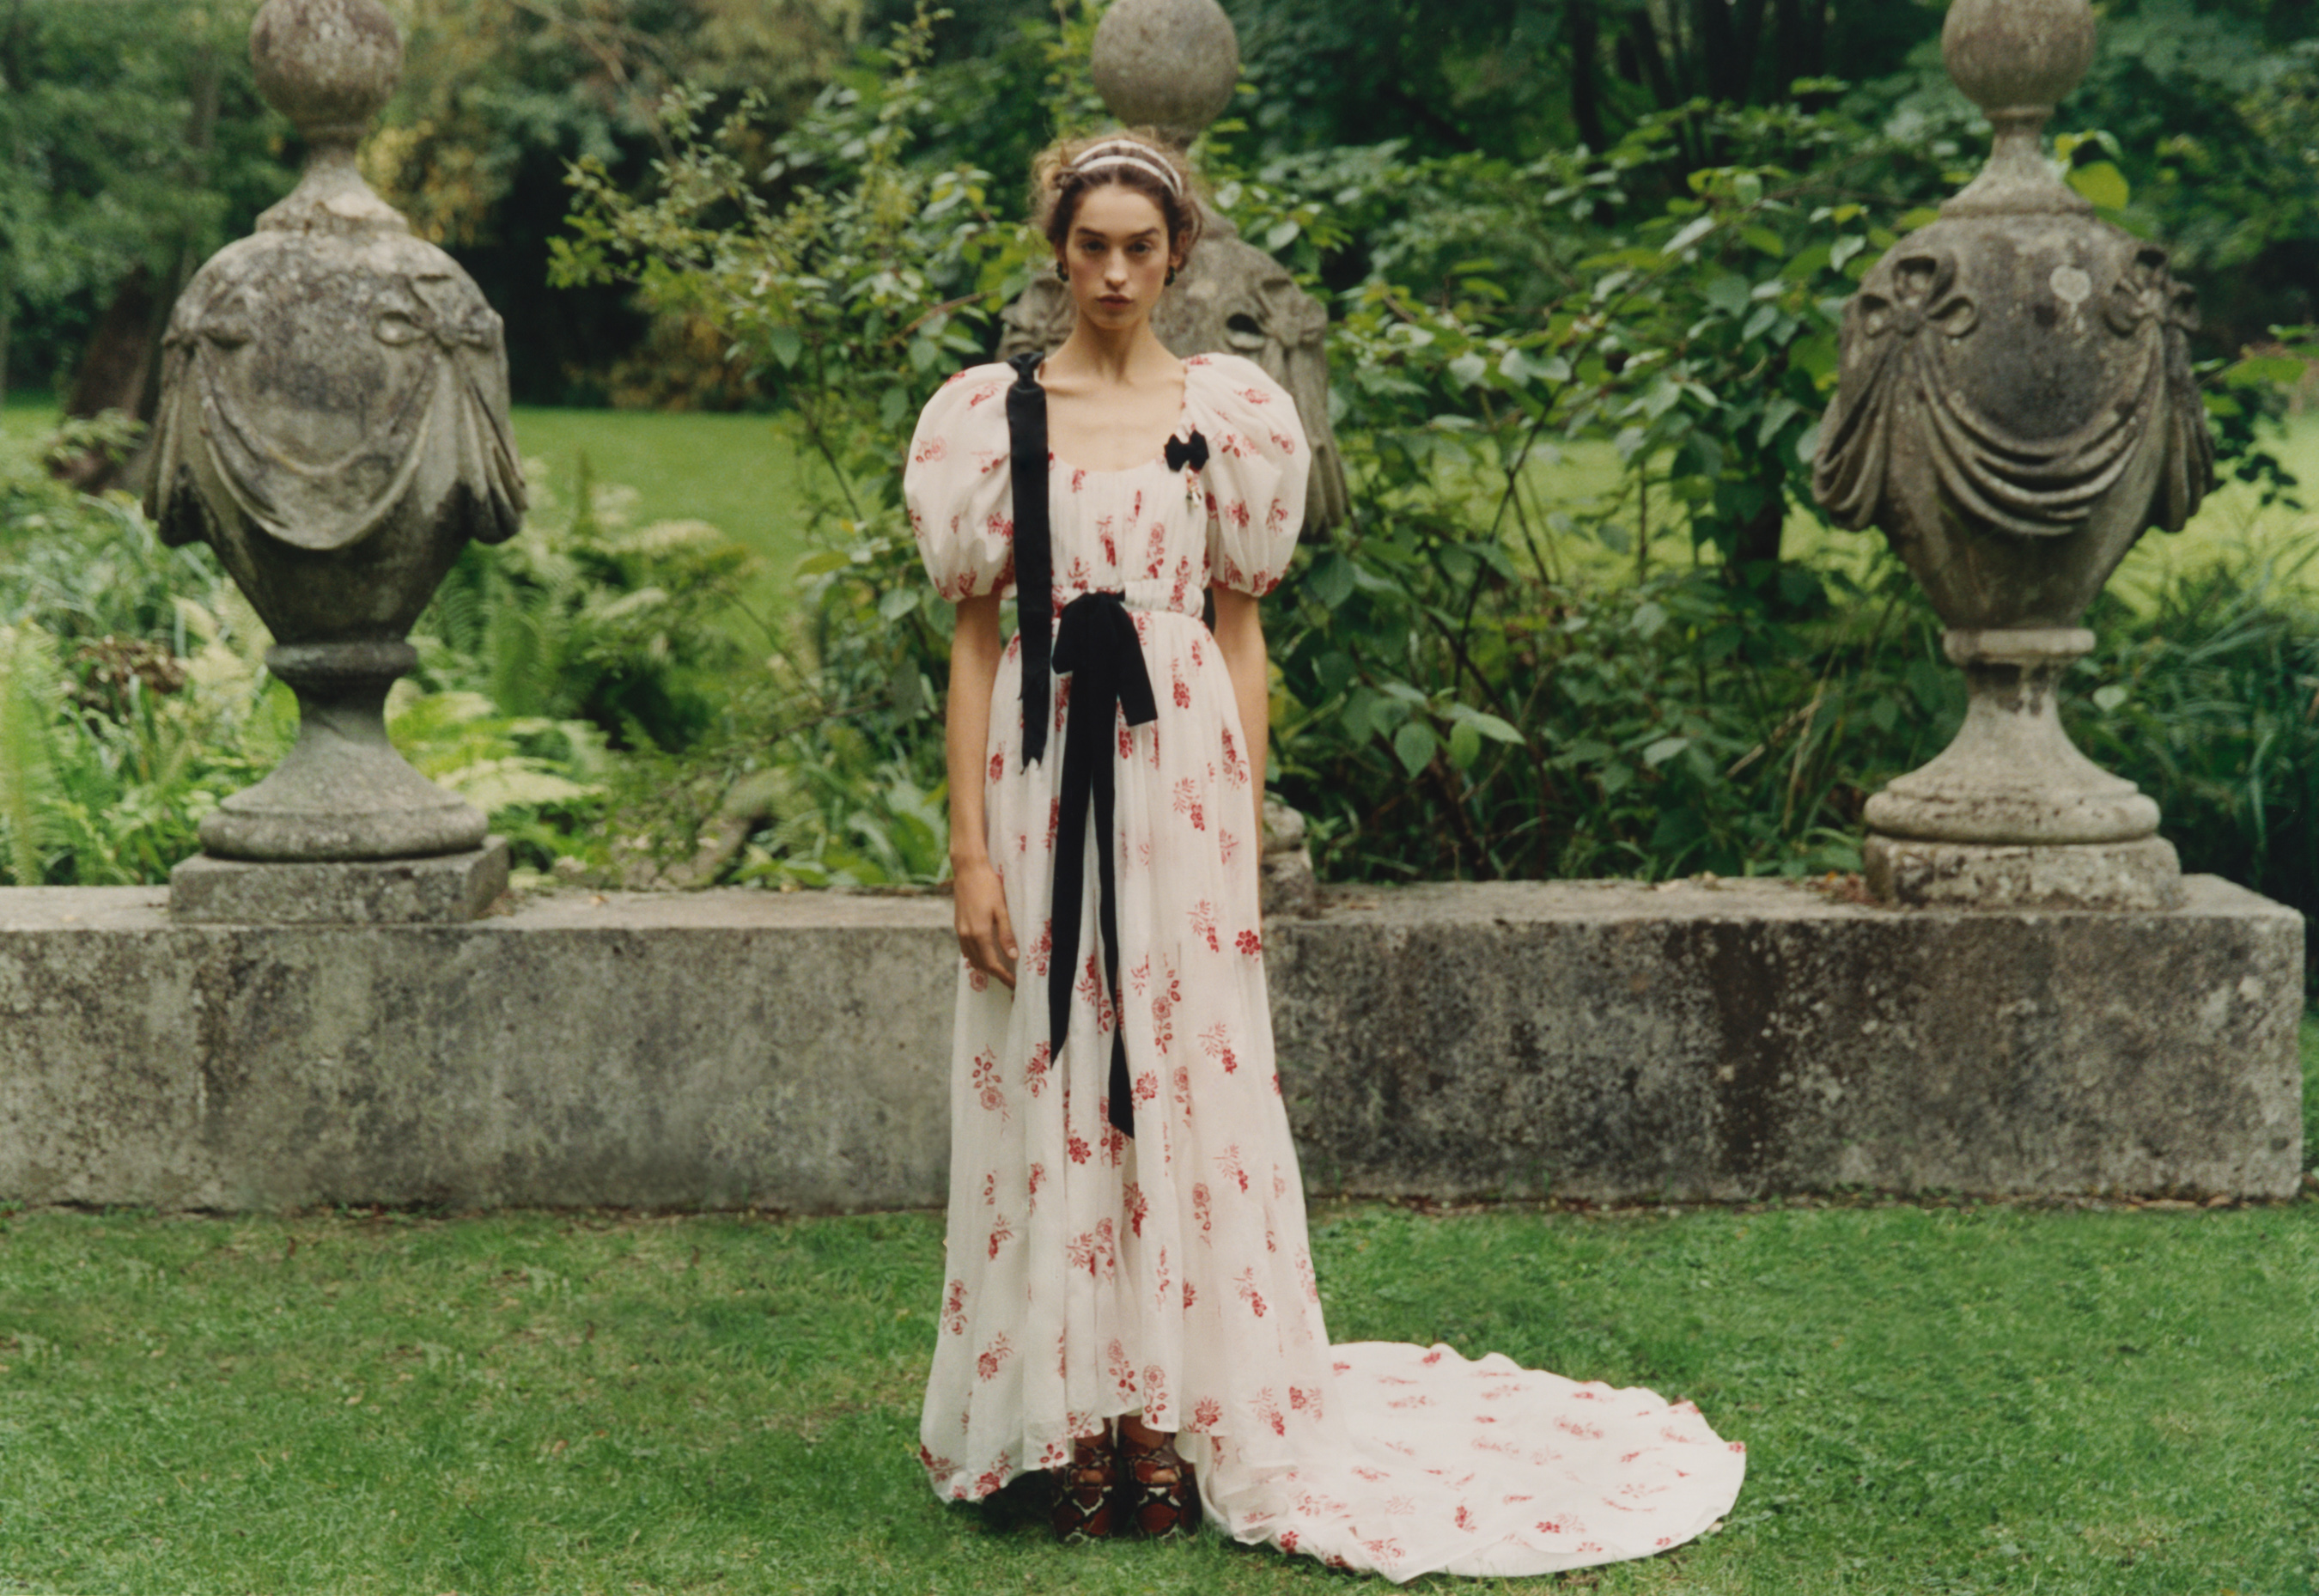 Erdem Spring 2021 Fashion Show Photos